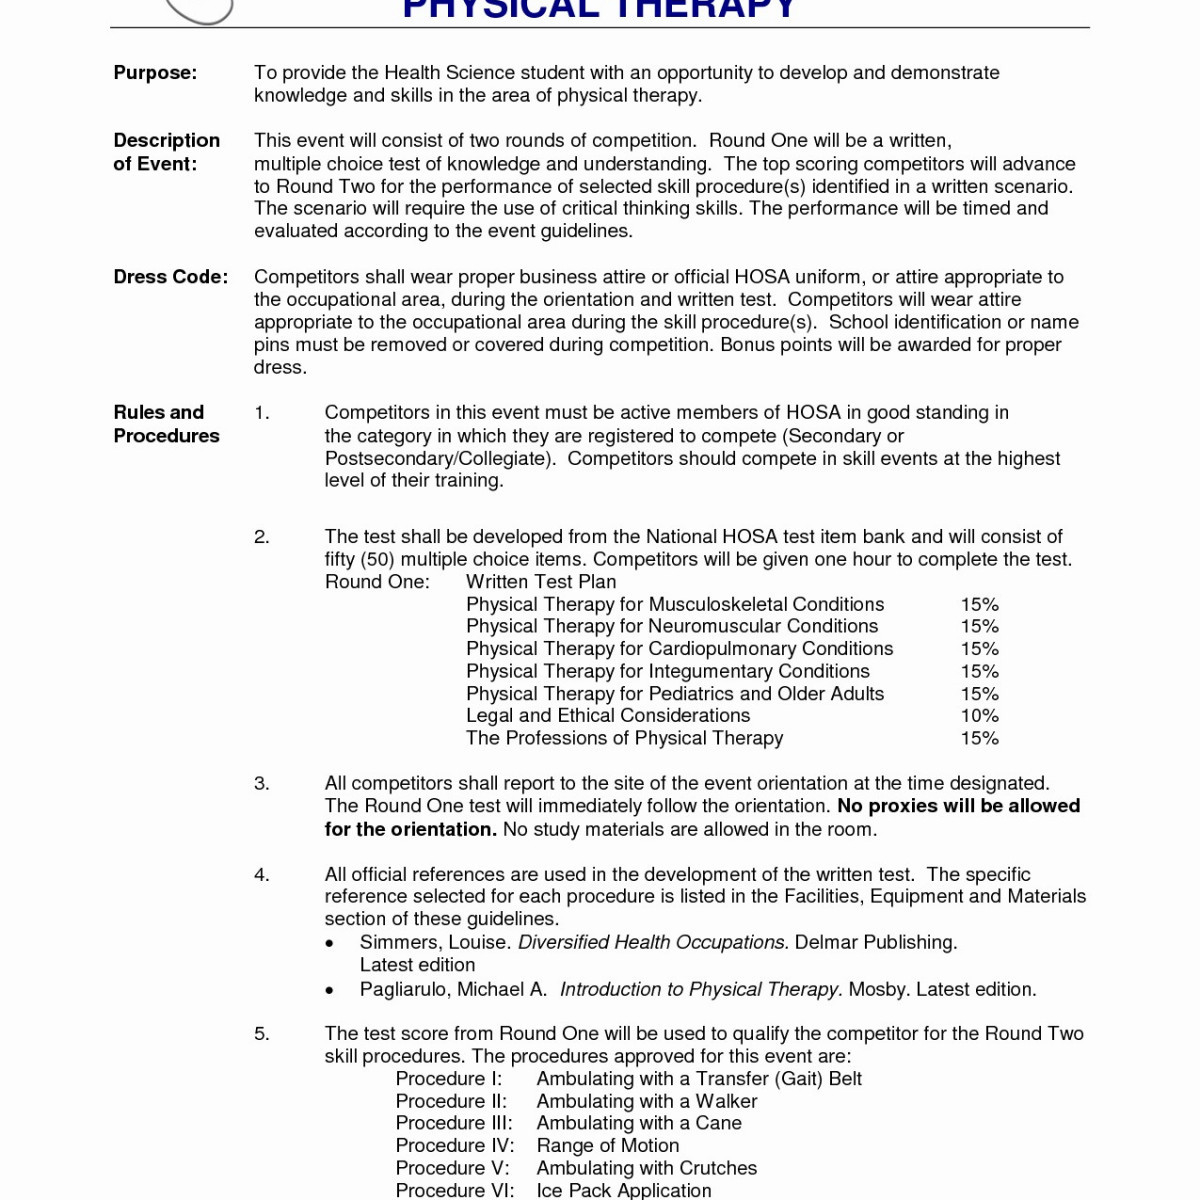 physical therapist resume template Collection-Resume Examples for Physical therapist at Resume Sample Ideas from Sample Physical Therapy Resume source cheapjordanretros 13-j